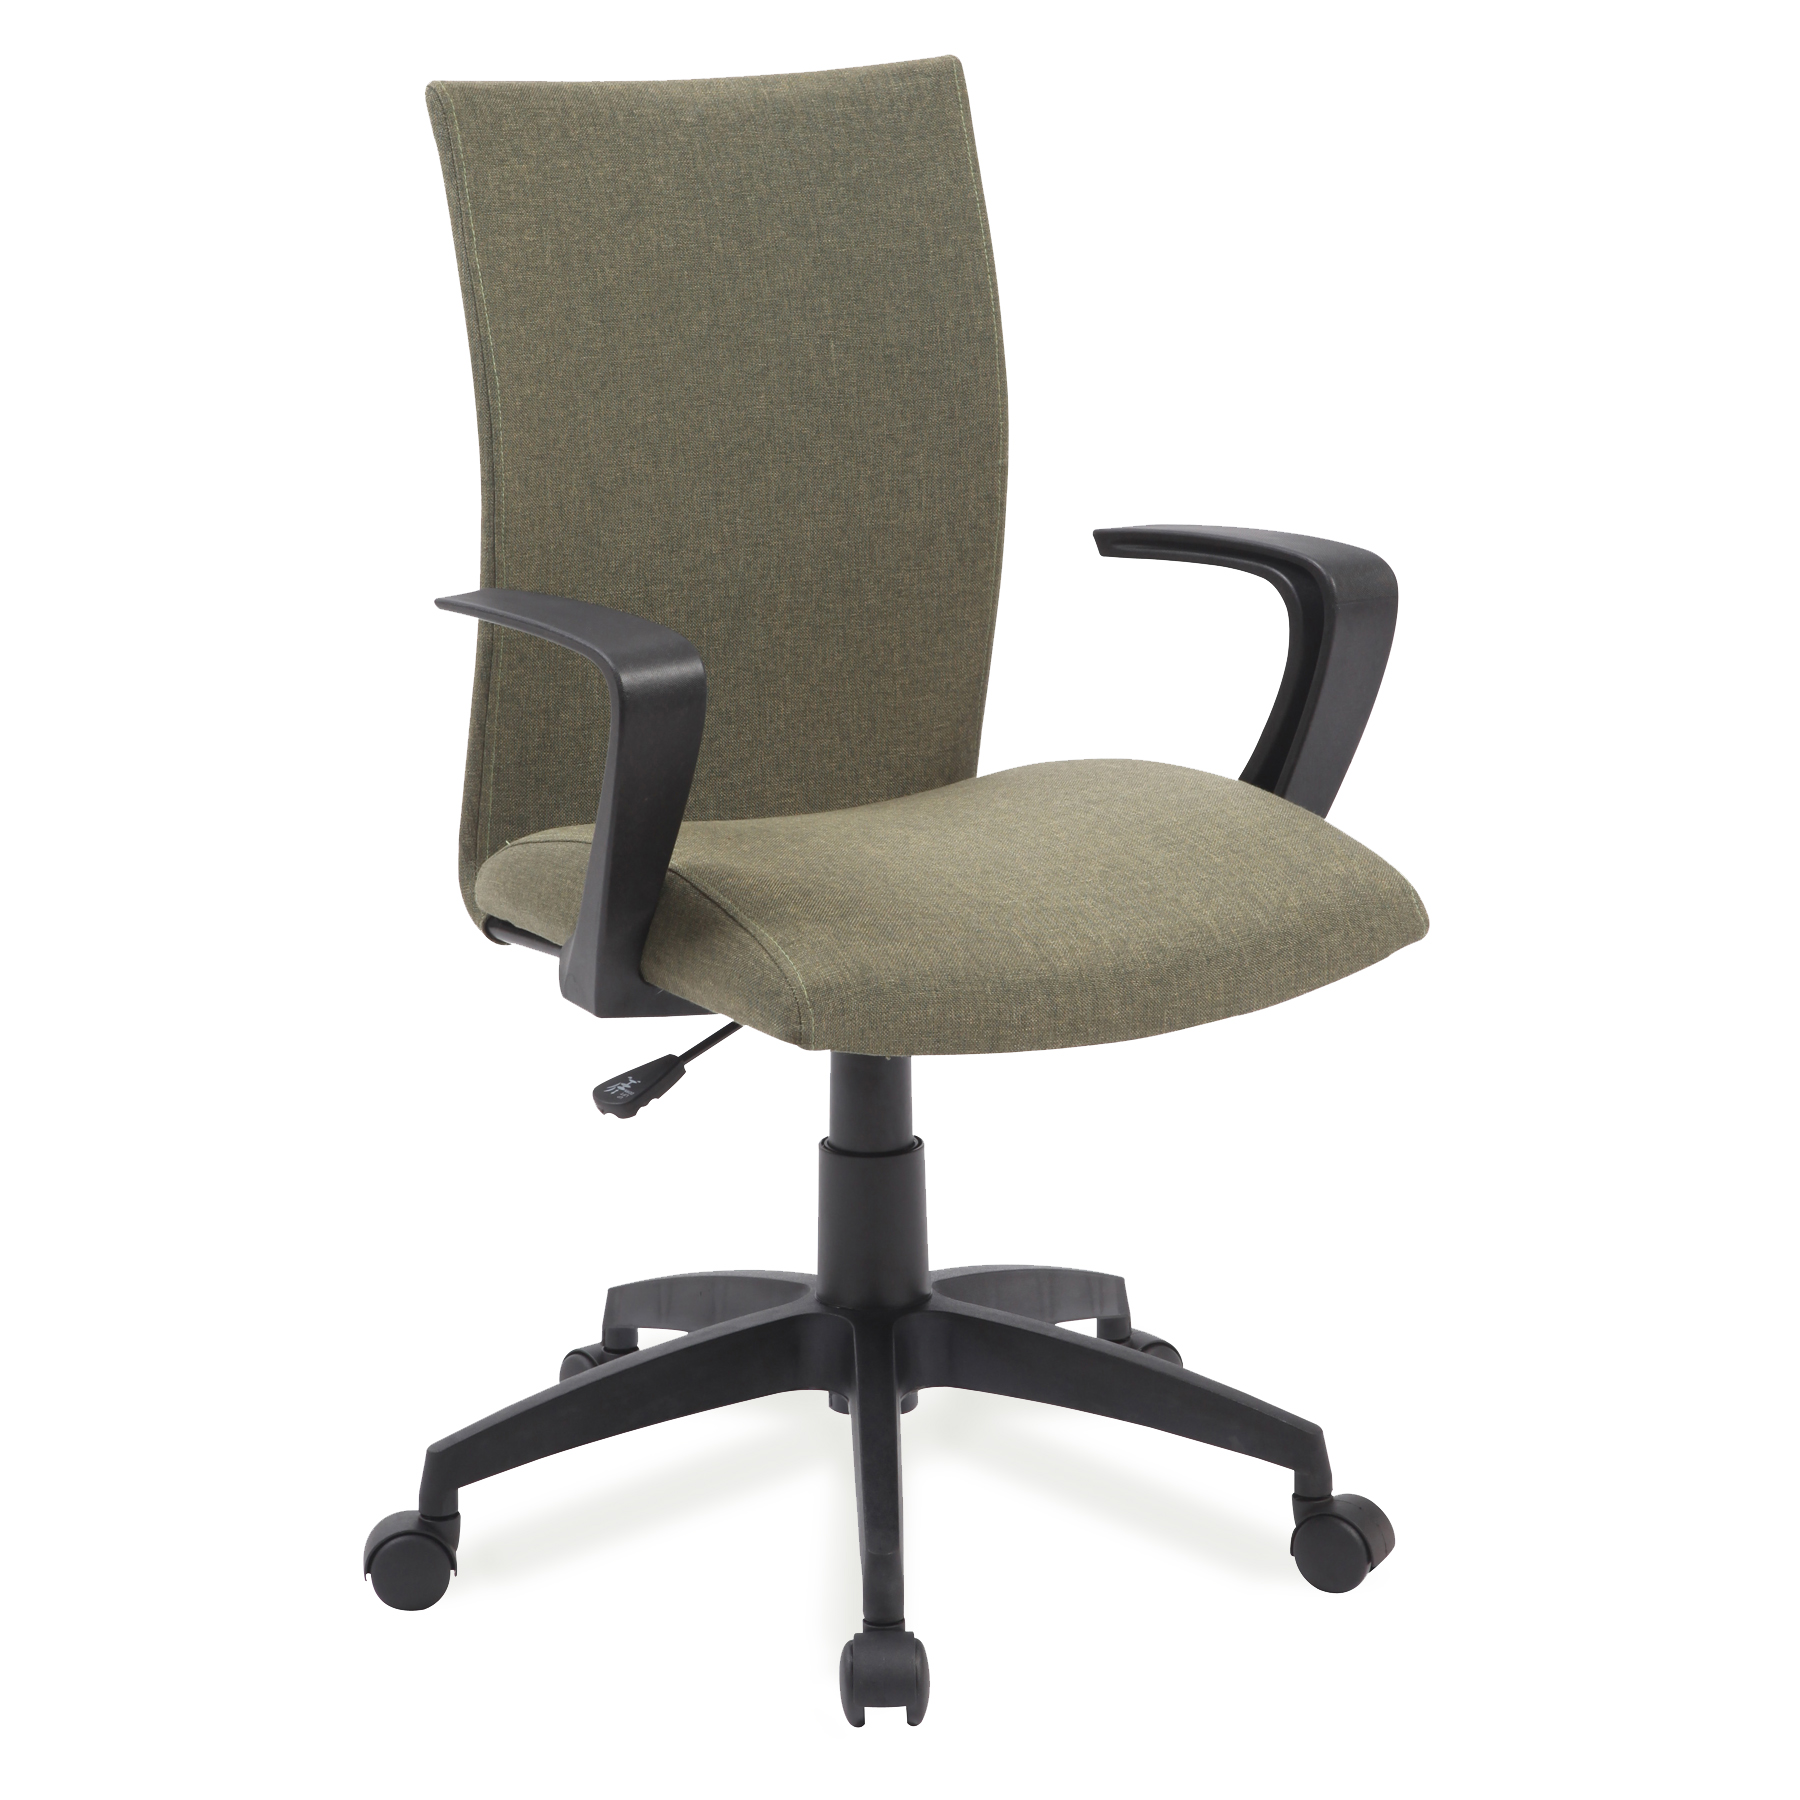 Sage Green Linen Apostrophe Office Chair with Black Caster Base